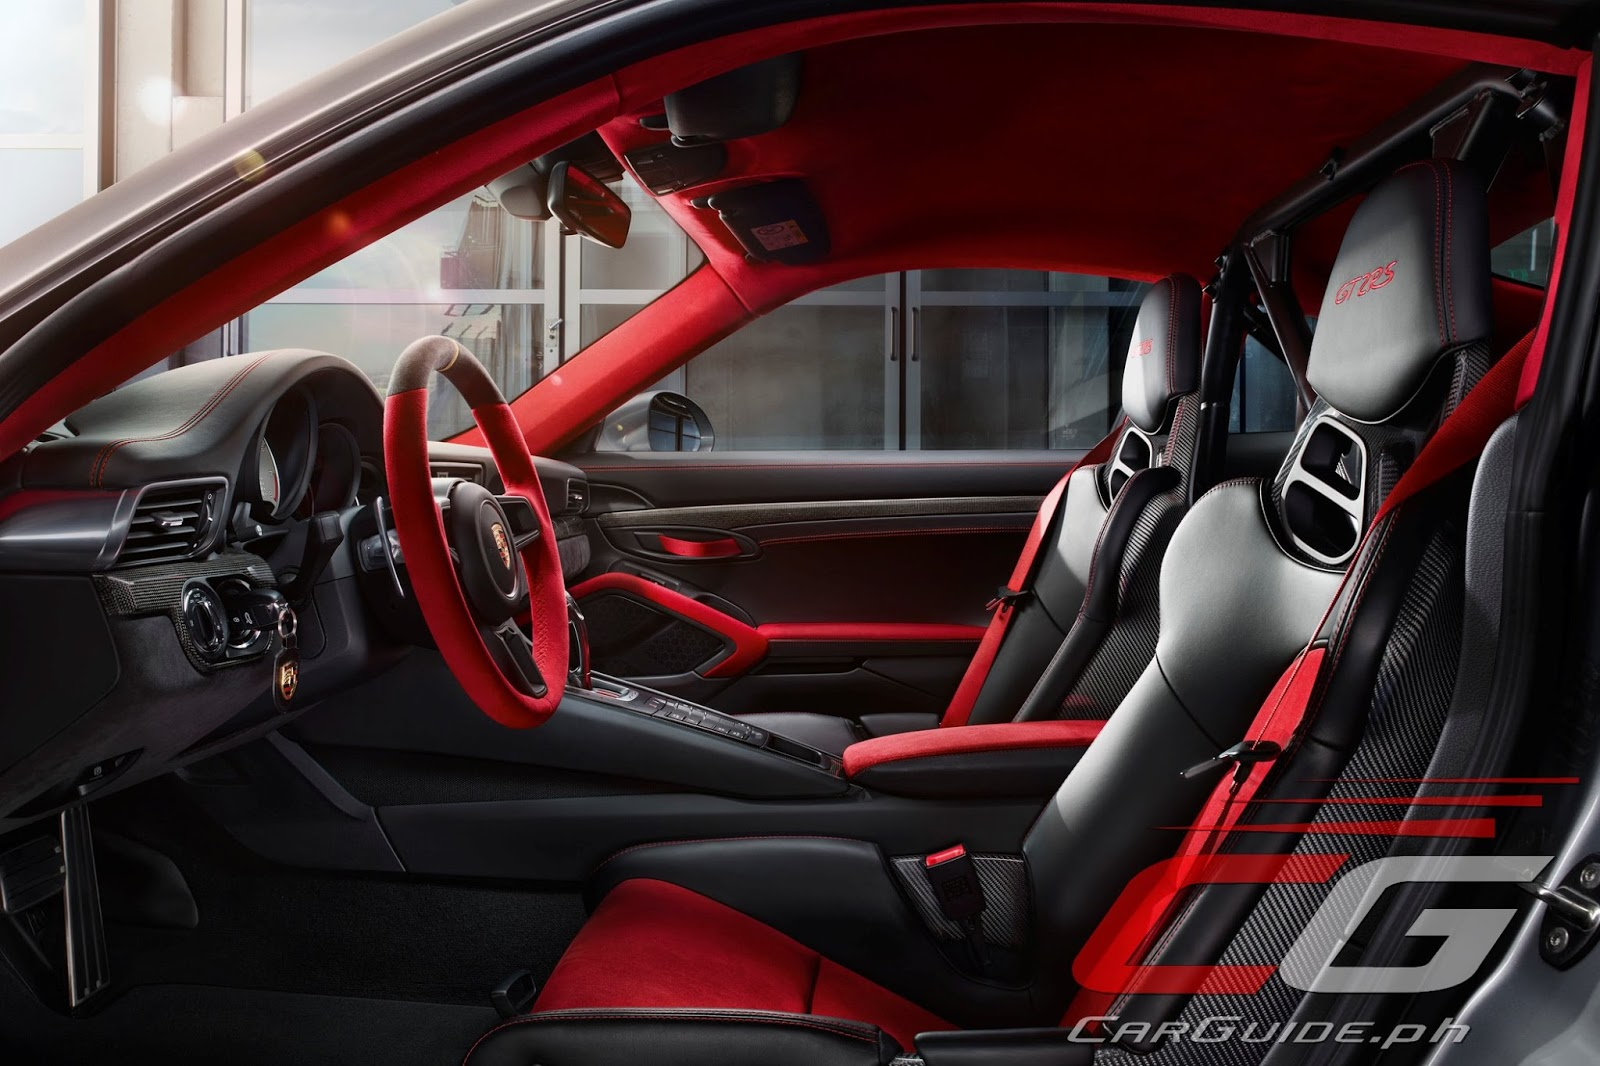 porsche launches two of the most extreme 911 models ever philippine car news car reviews. Black Bedroom Furniture Sets. Home Design Ideas